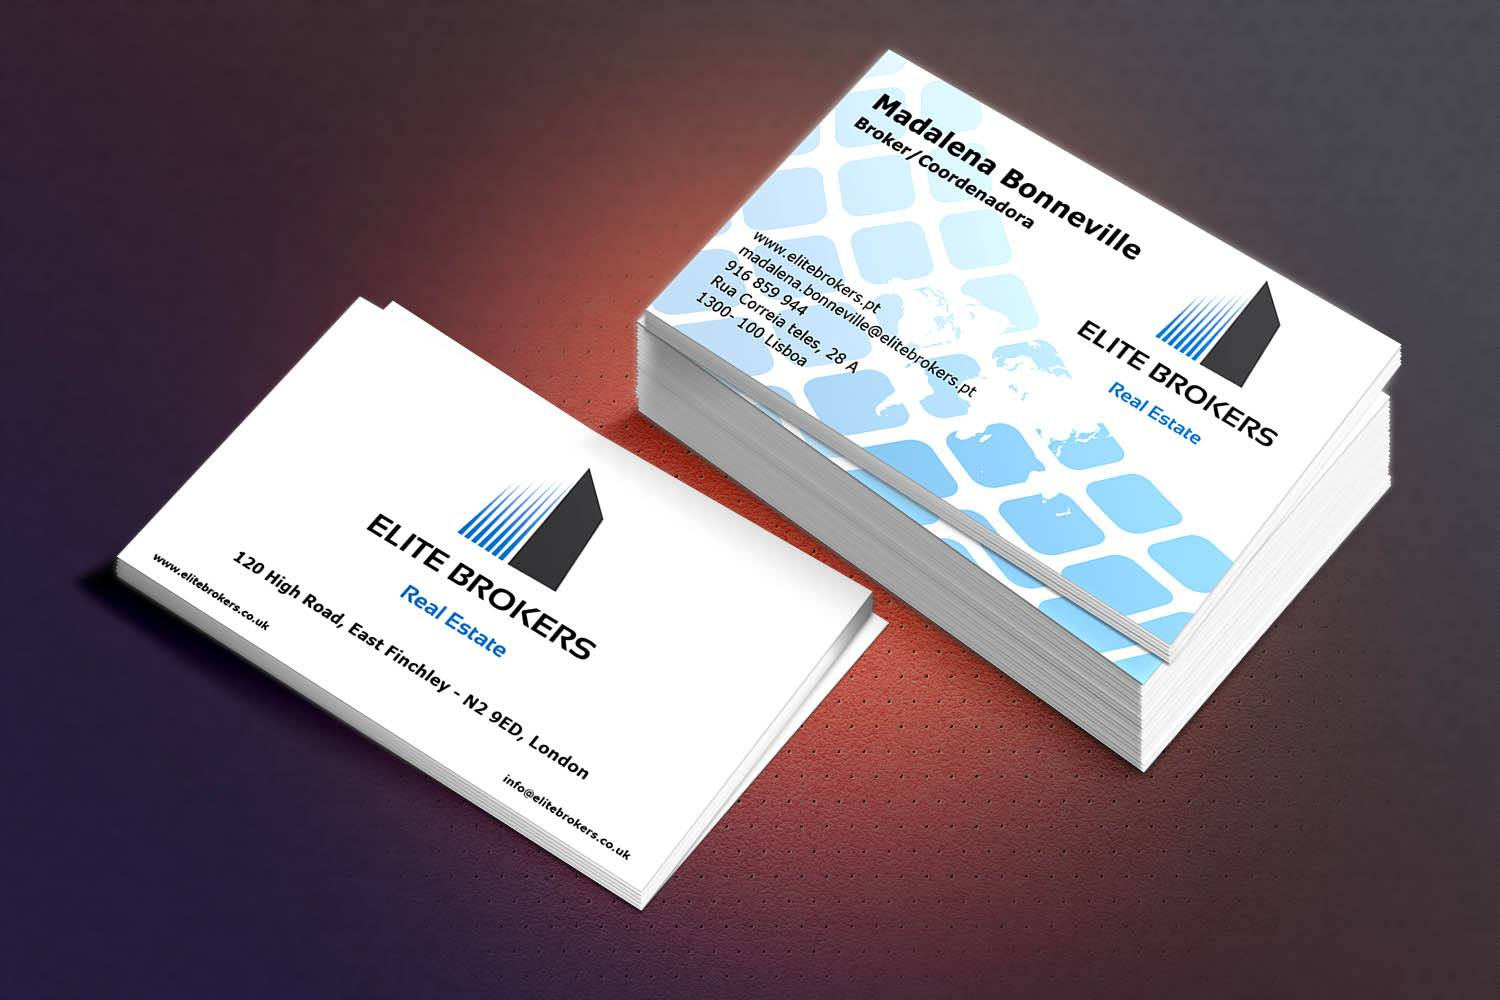 Provide Professional Business Card Design services in just